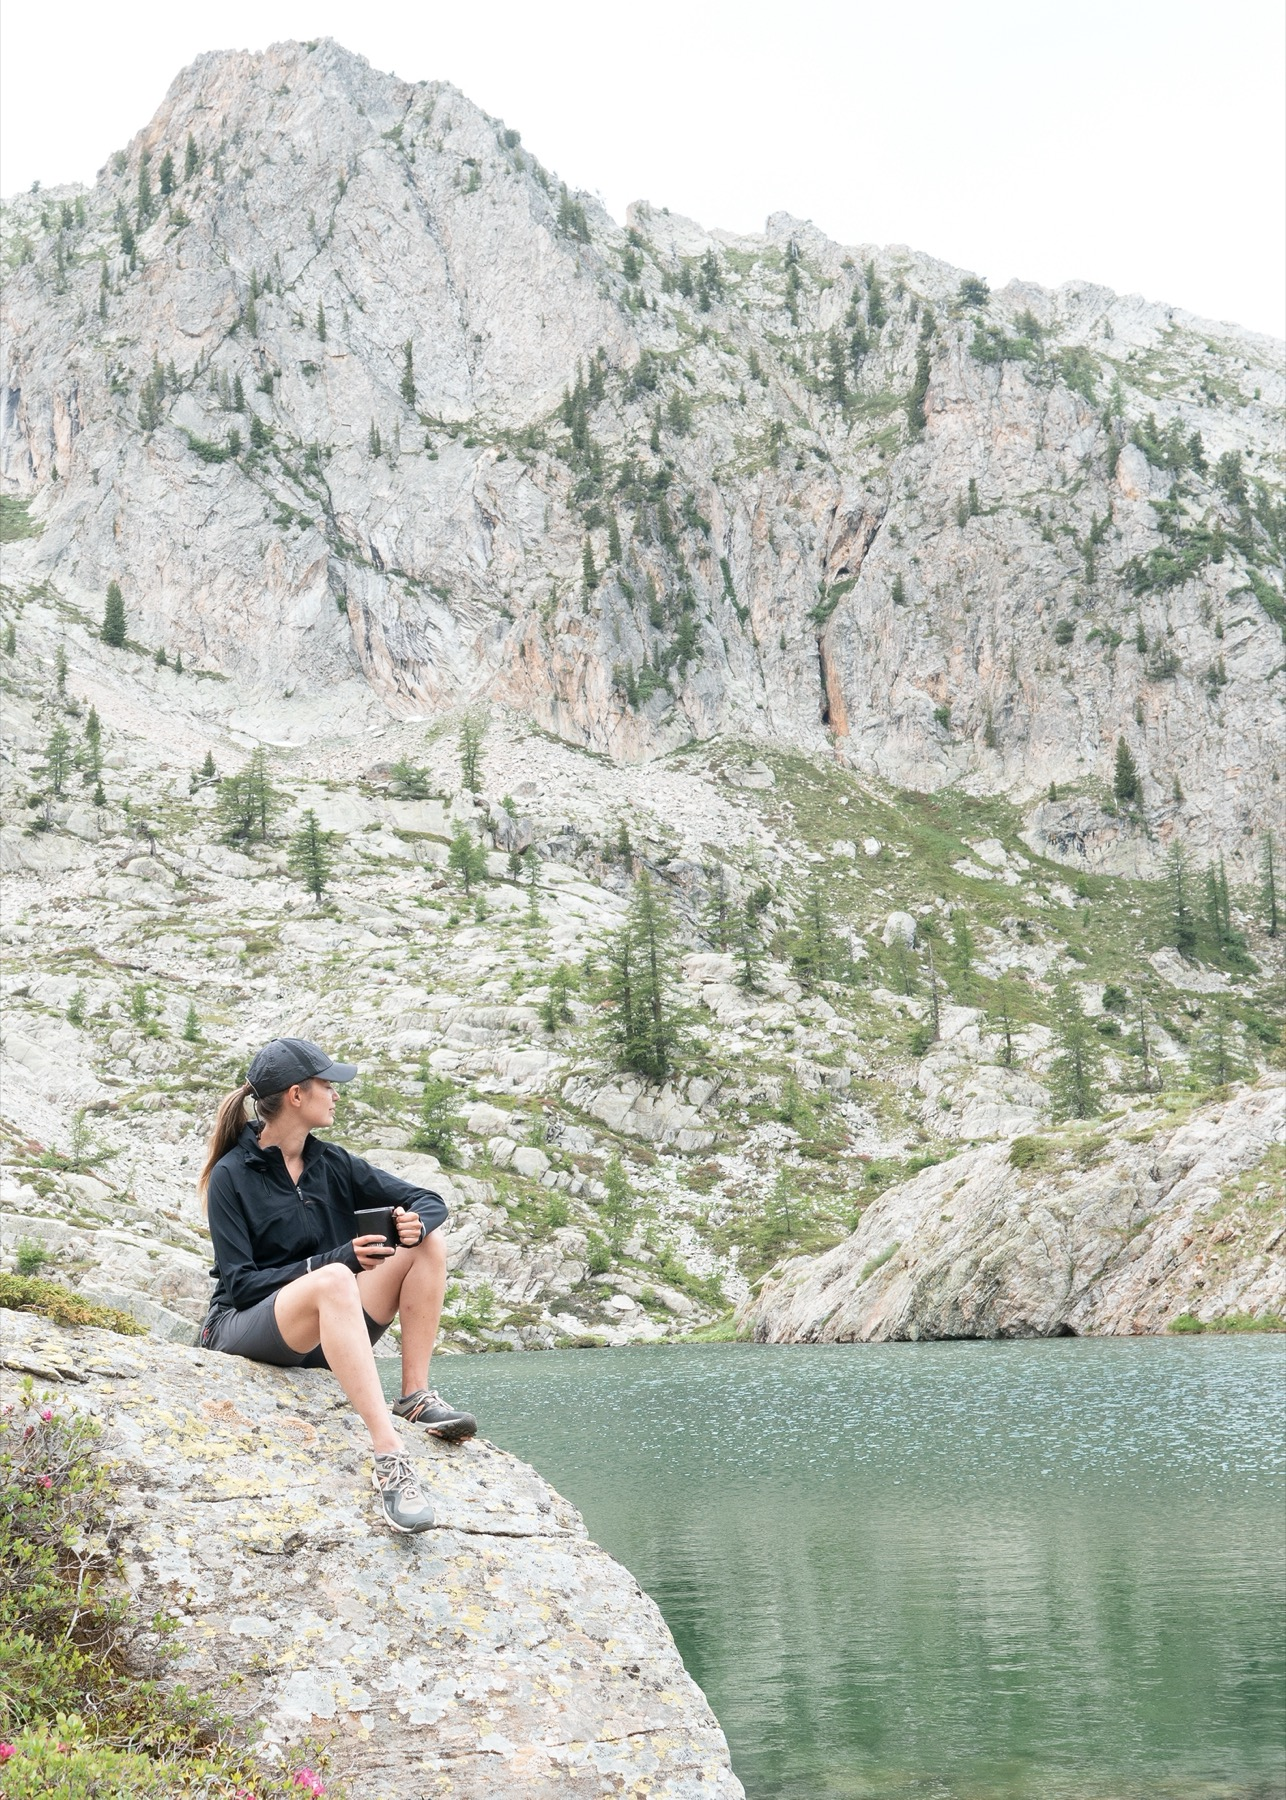 5 Tips to Pick the Right Hiking Shoes